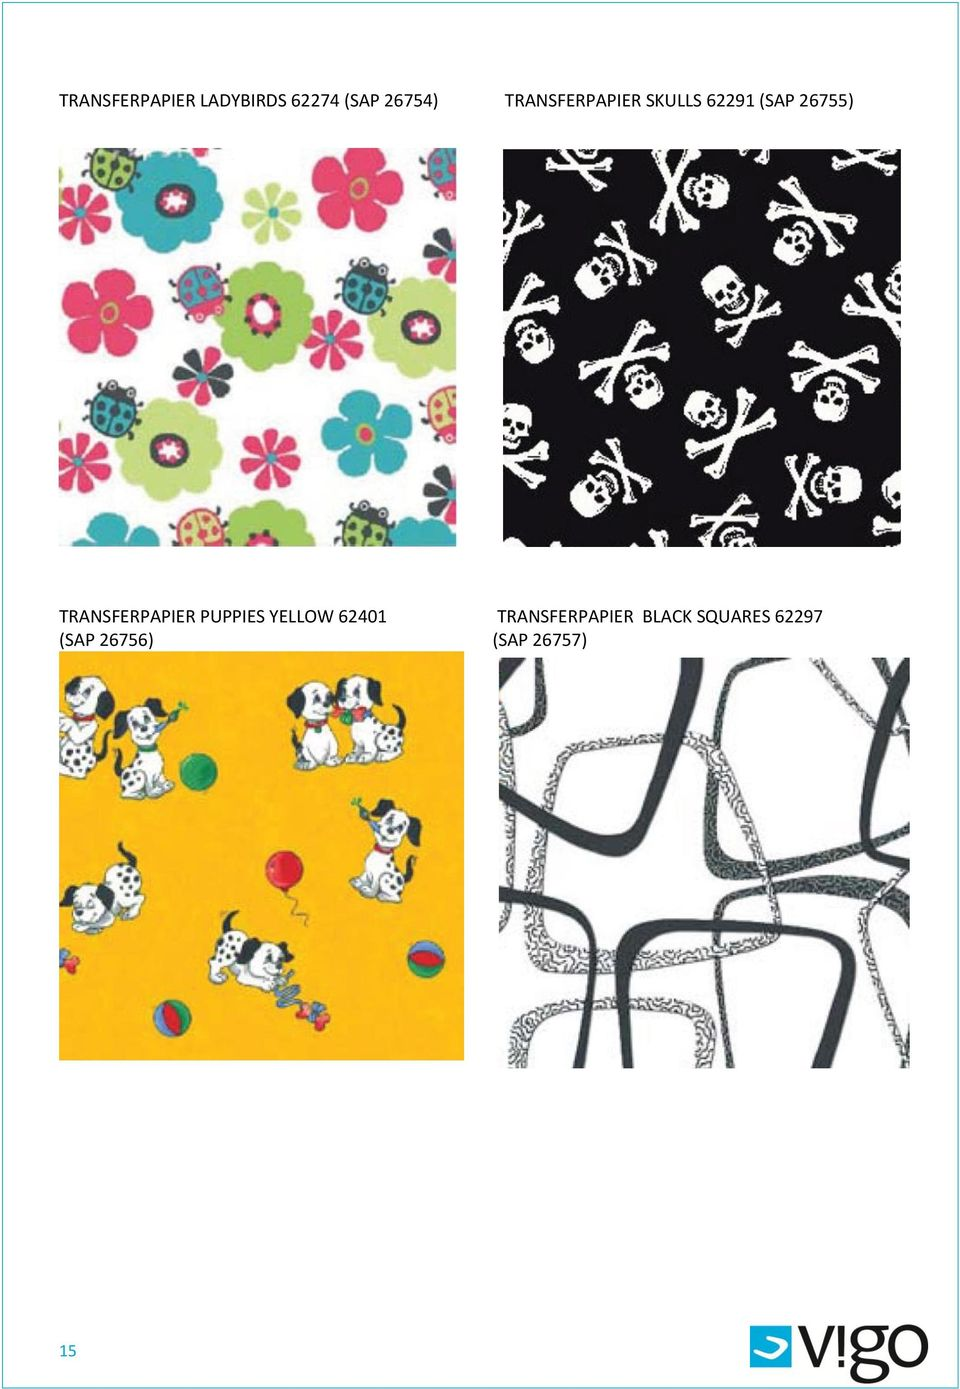 TRANSFERPAPIER PUPPIES YELLOW 62401